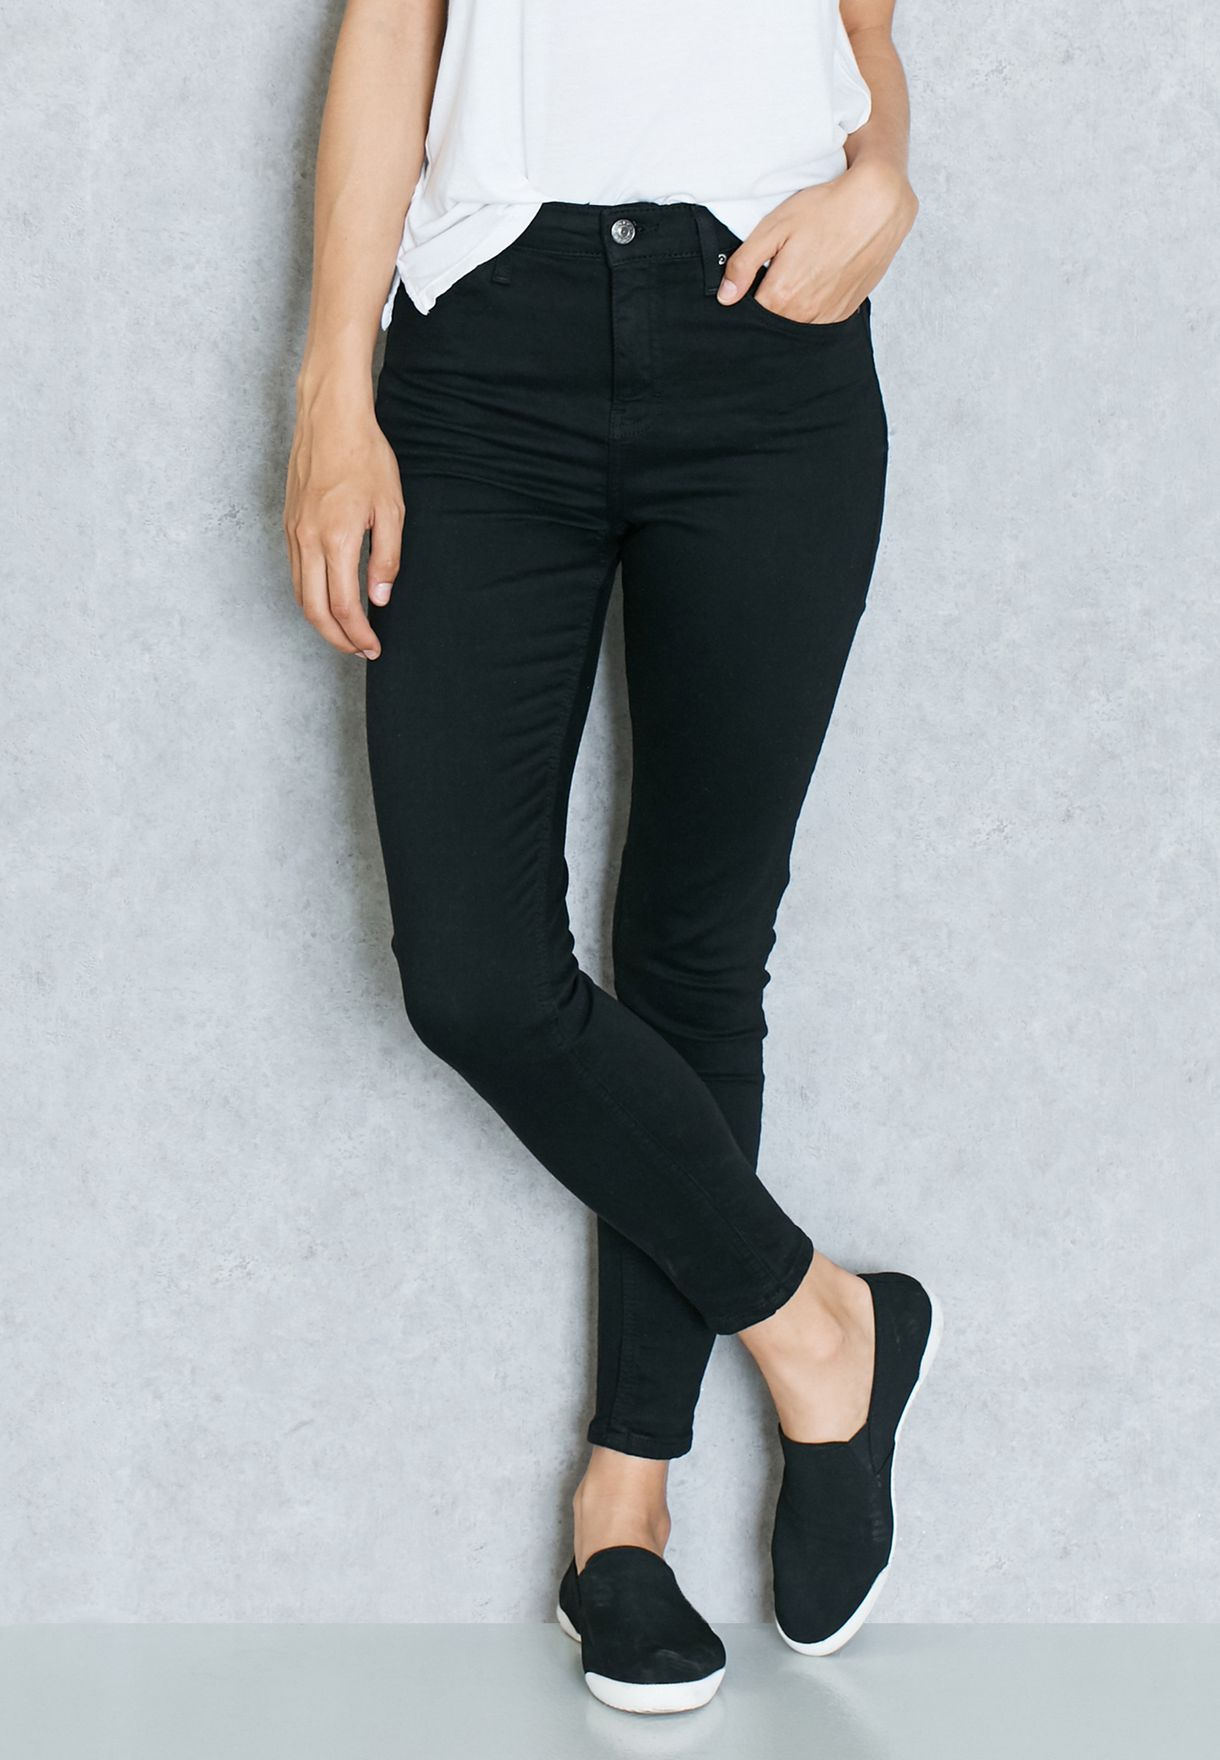 cc3b85e53d6 Shop Topshop black Moto Jamie High Waisted Skinny Jeans for Women in ...